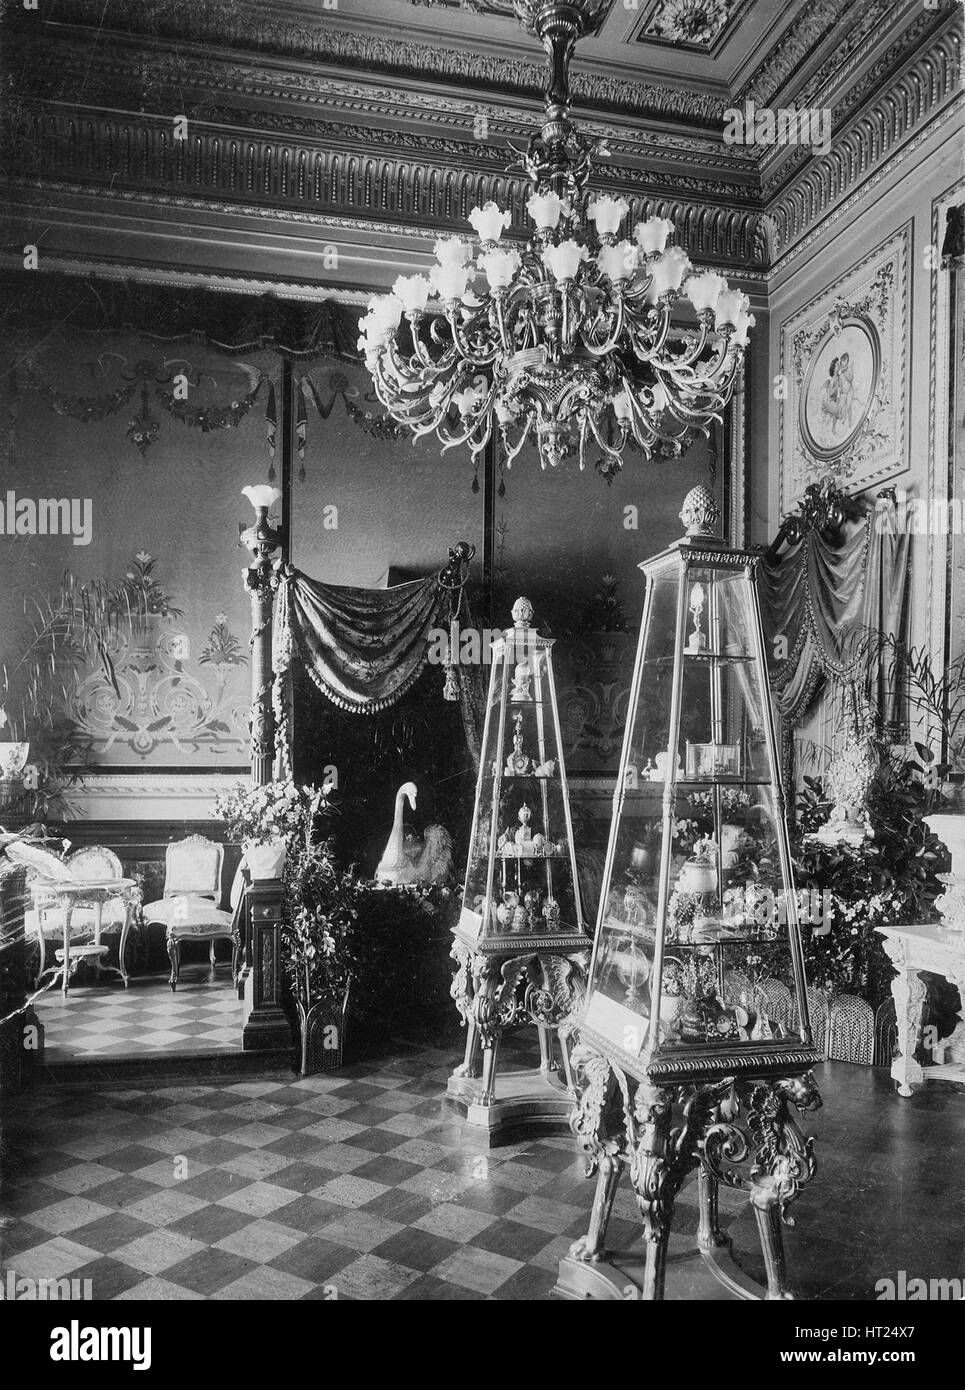 The Exhibition of the Fabergé House, 1902. Artist: Bulla, Karl Karlovich (1853-1929) - Stock Image